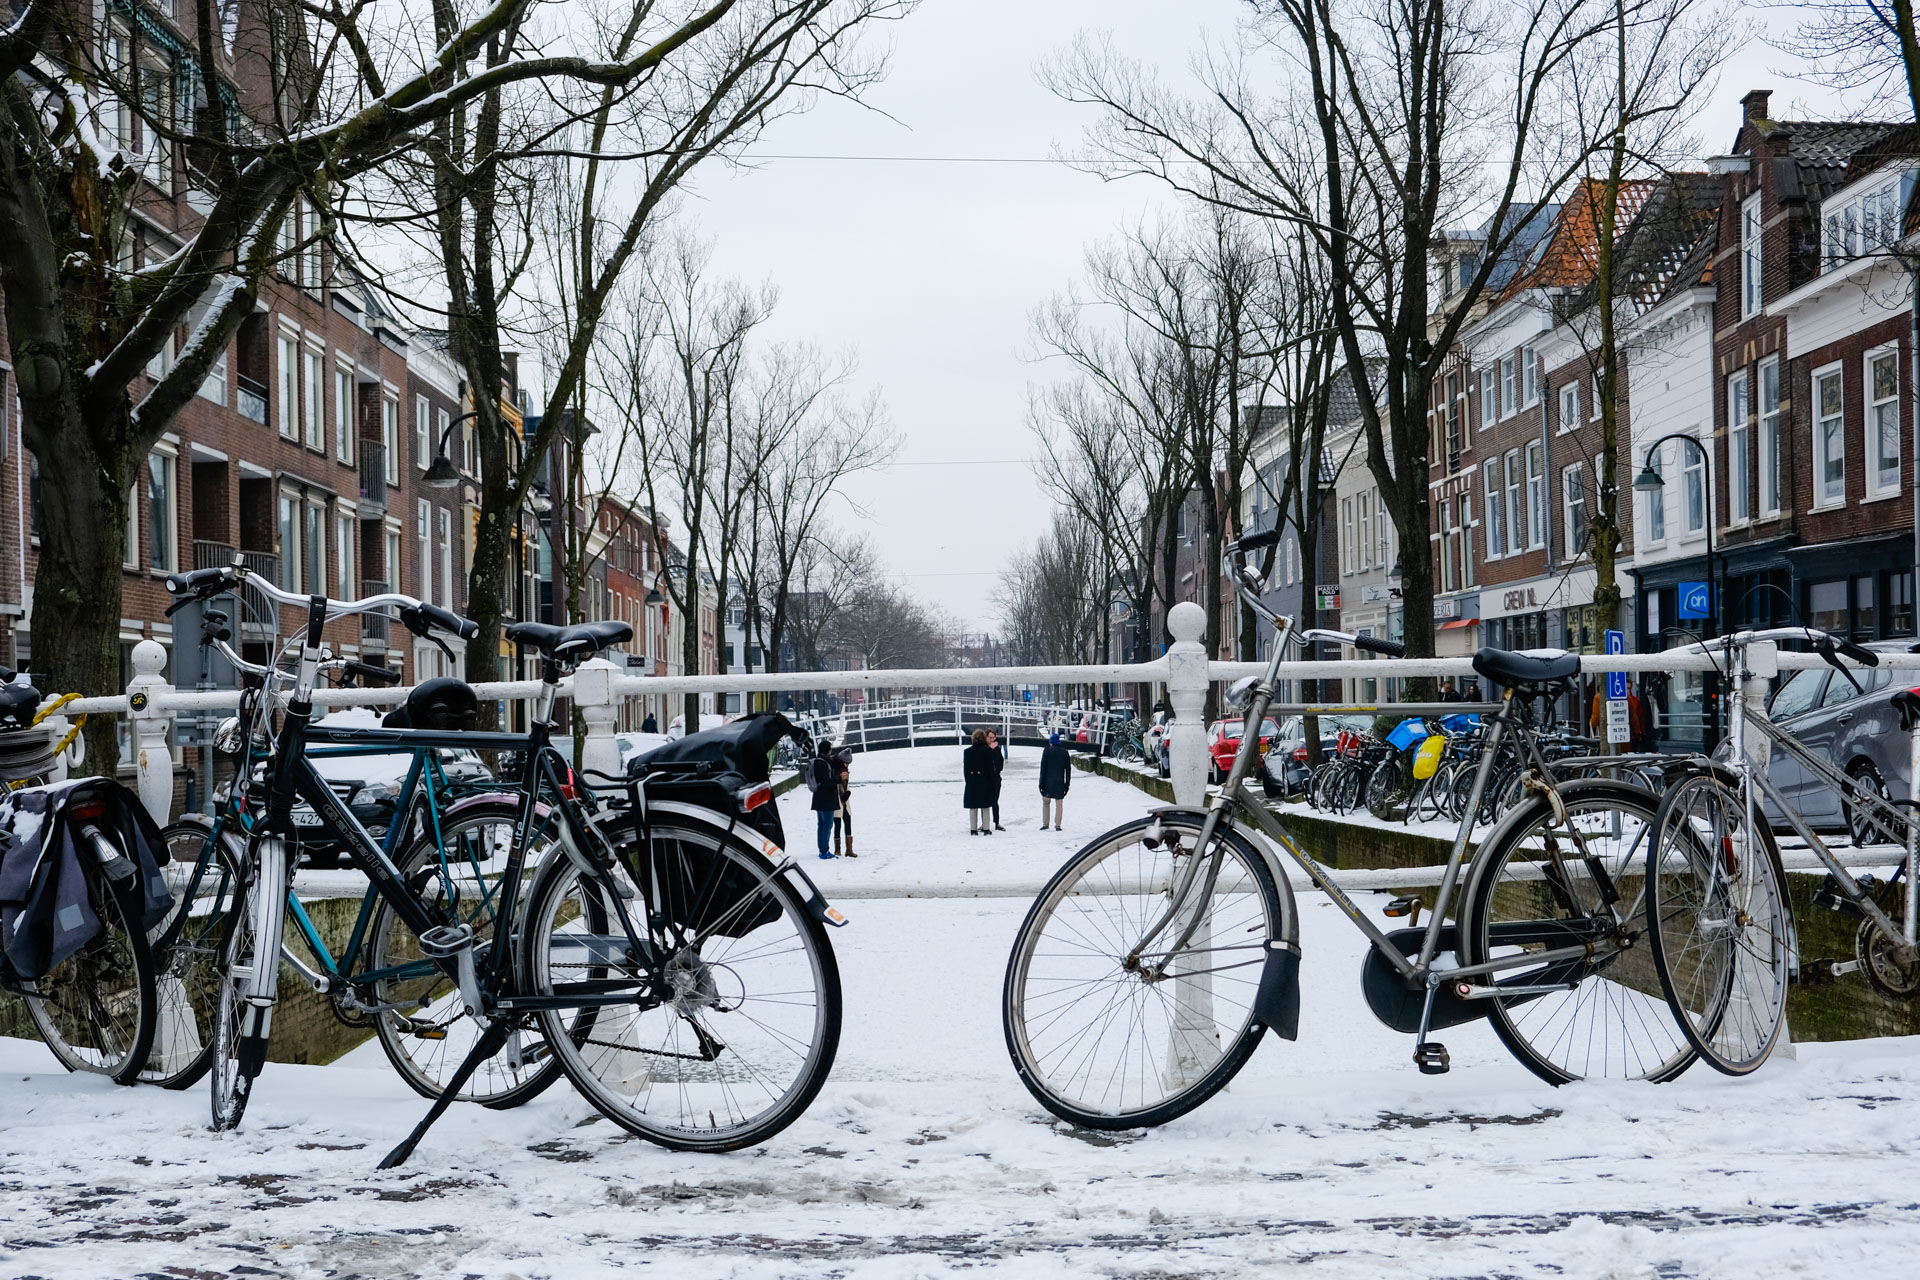 Typisch Nederlands: bike and canal (and snow)